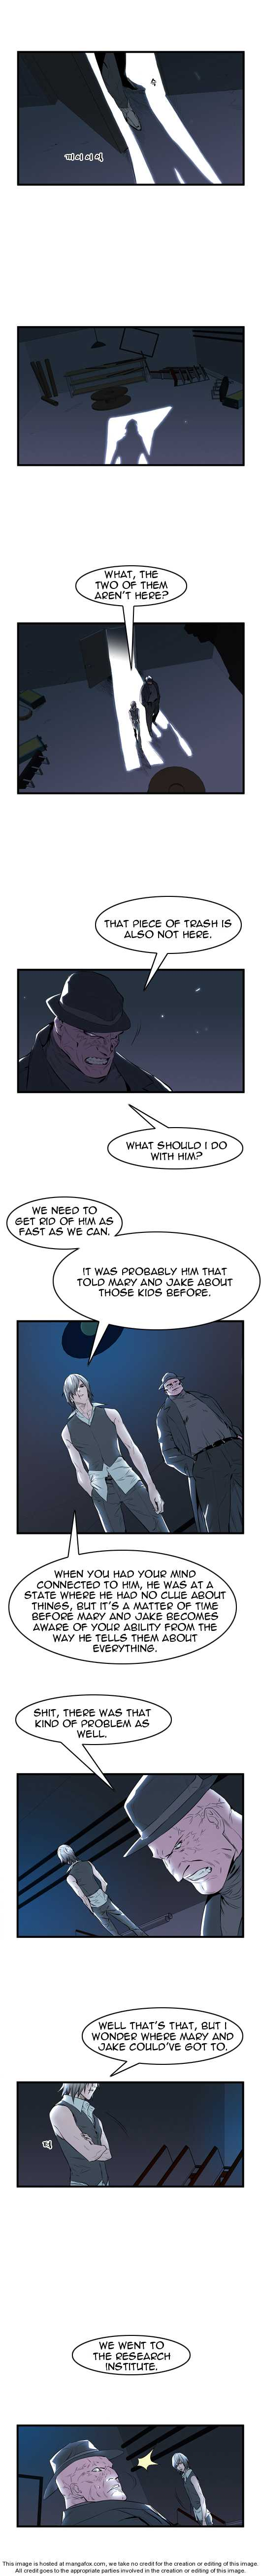 Noblesse 56 Page 2